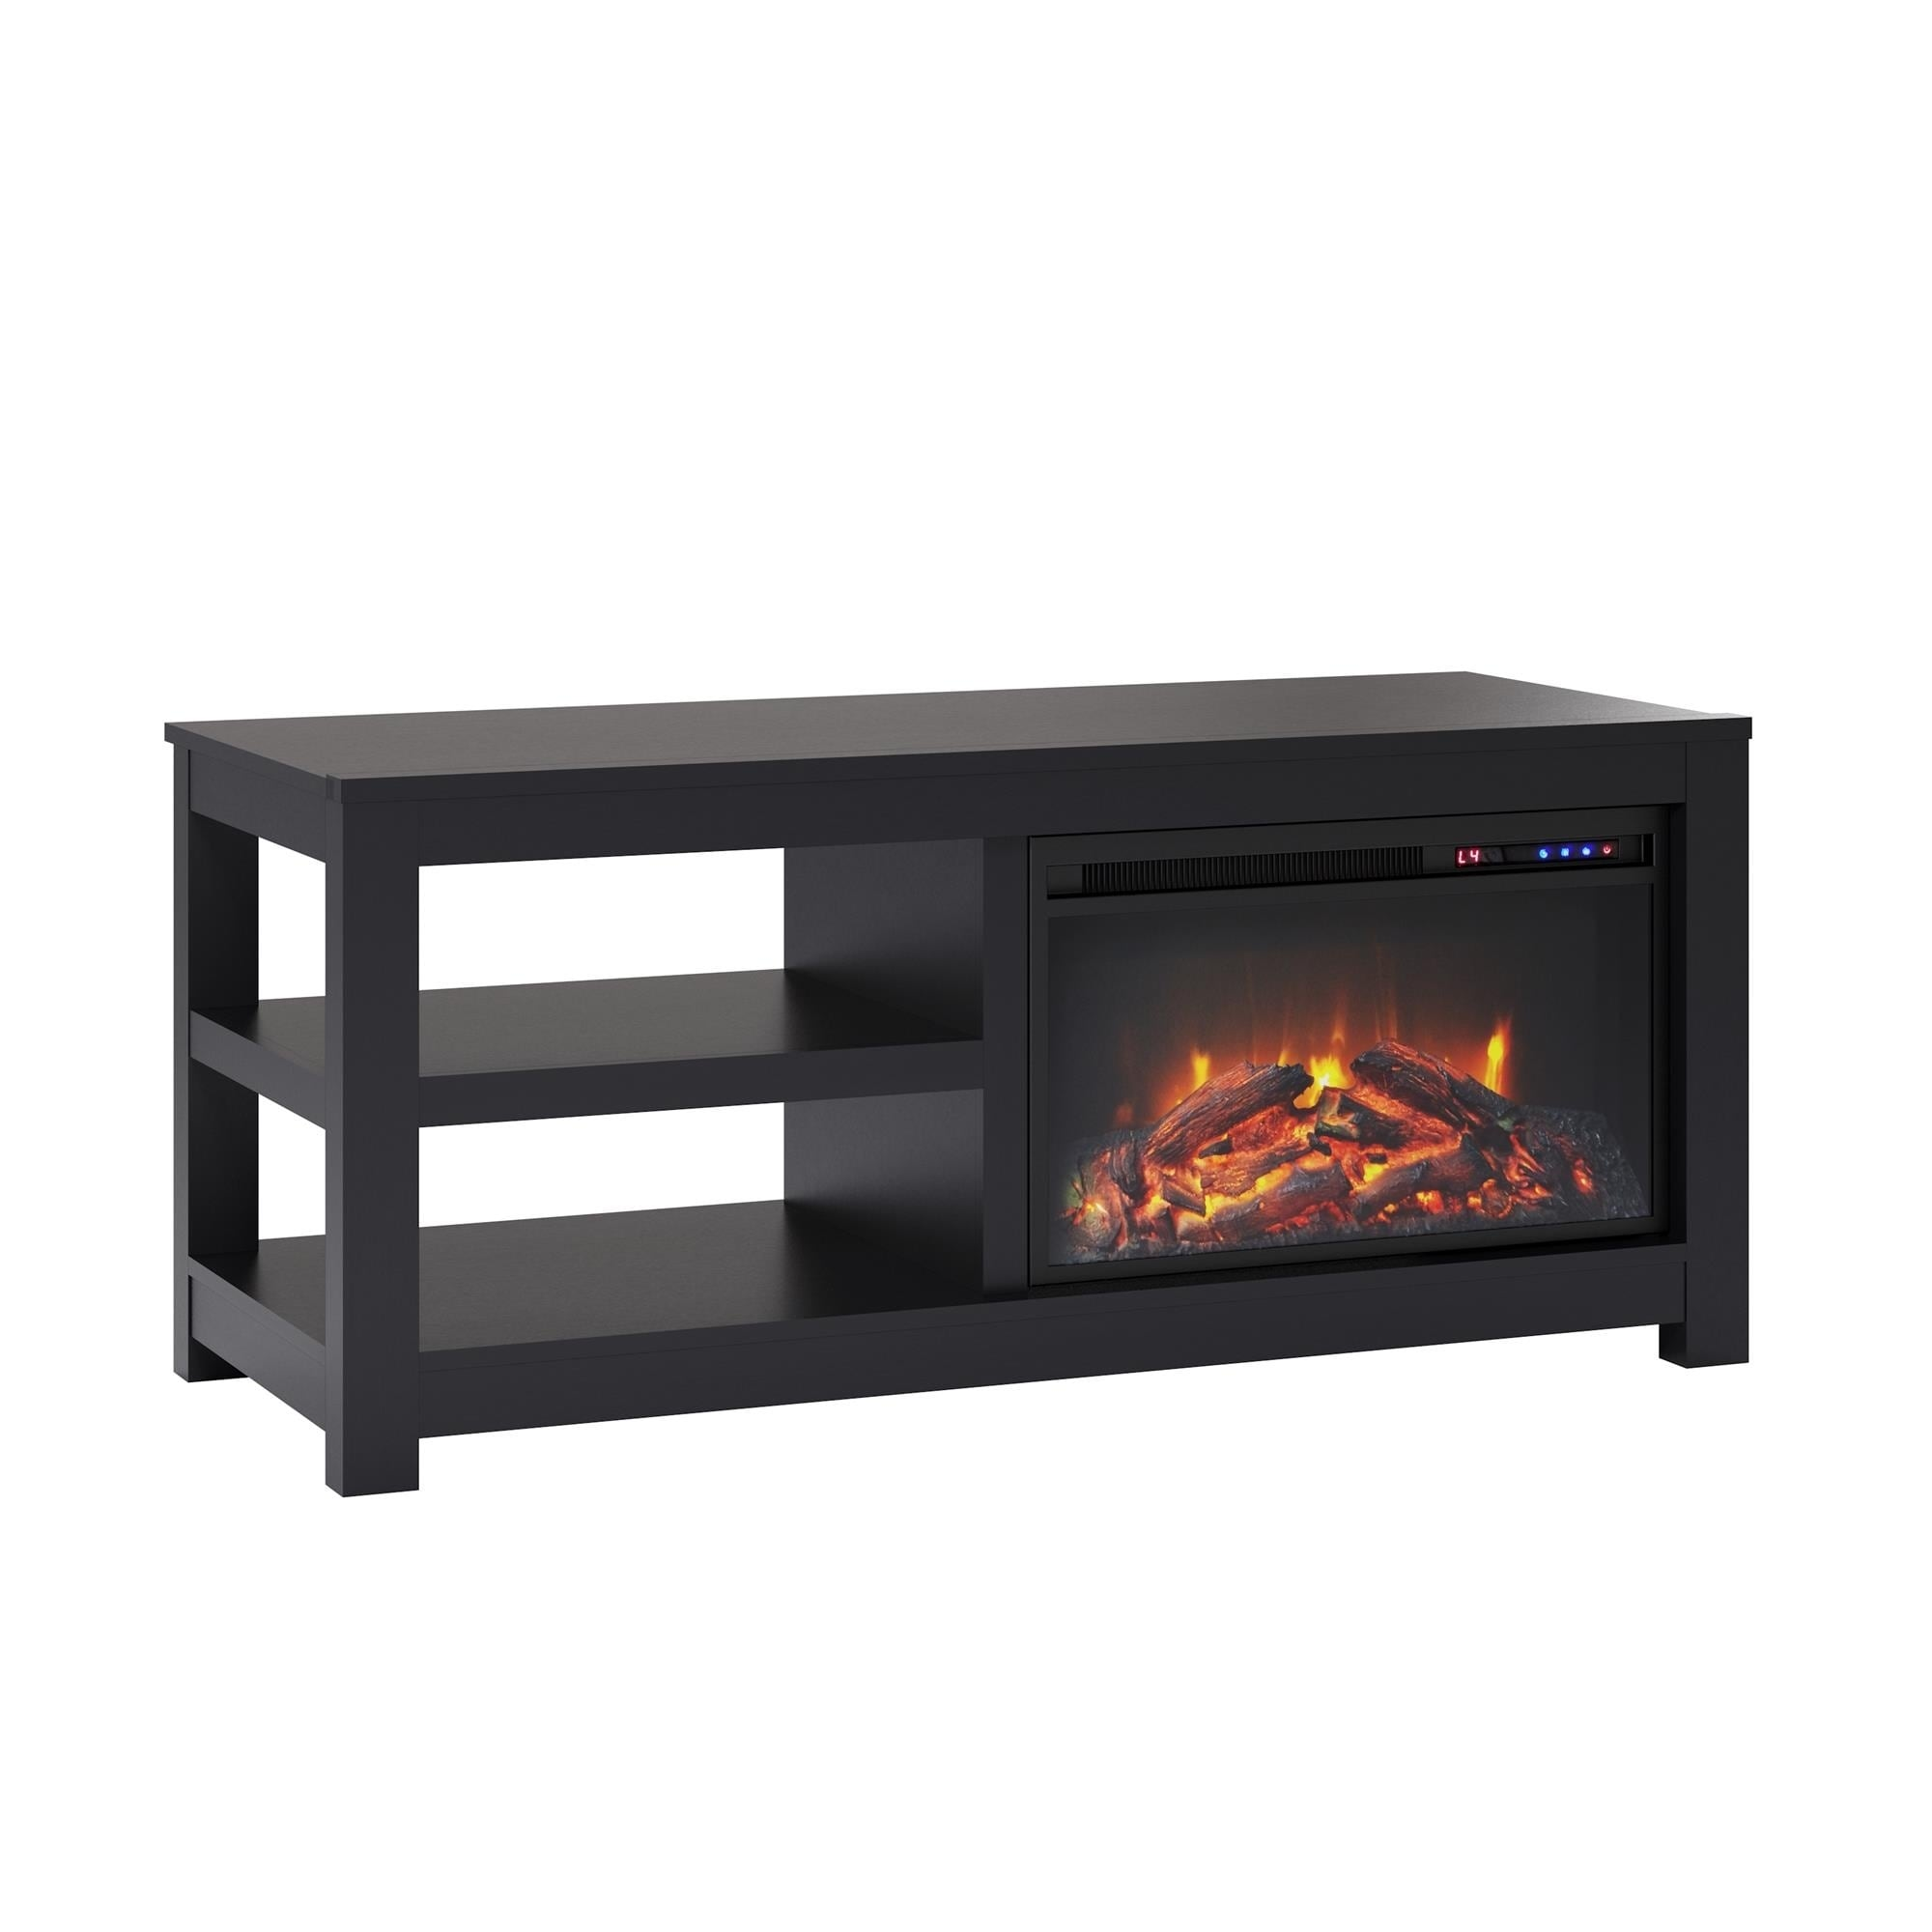 Shop Avenue Greene Jack Electric Fireplace Tv Stand For Tvs Up To 55